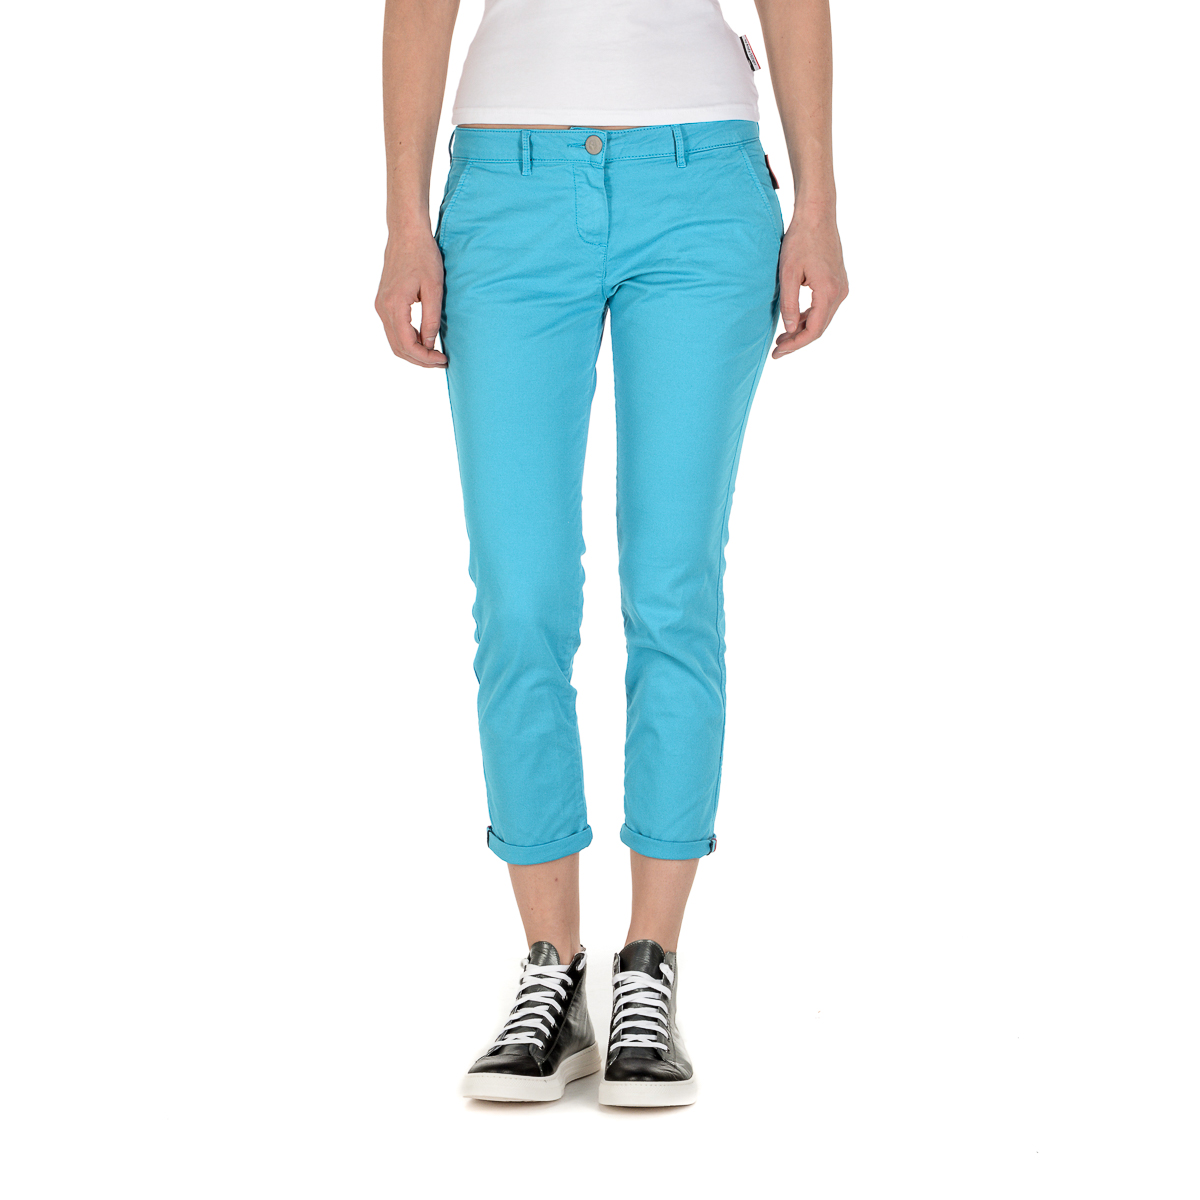 Primary image for Andrew Charles Womens Pants Light Blue PENDA